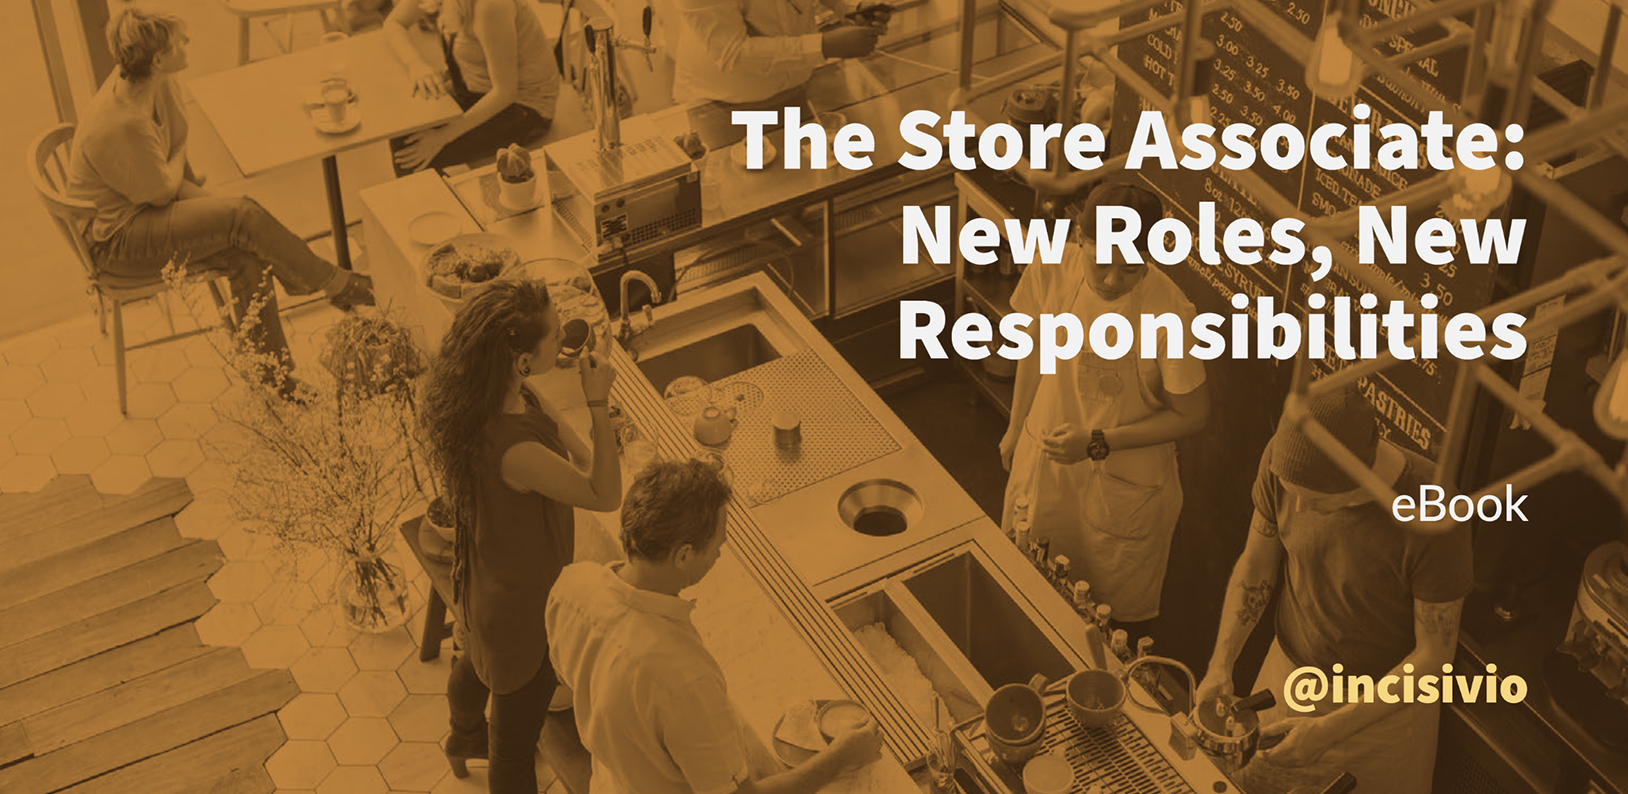 The Store Associate: New Roles, New Responsibilities